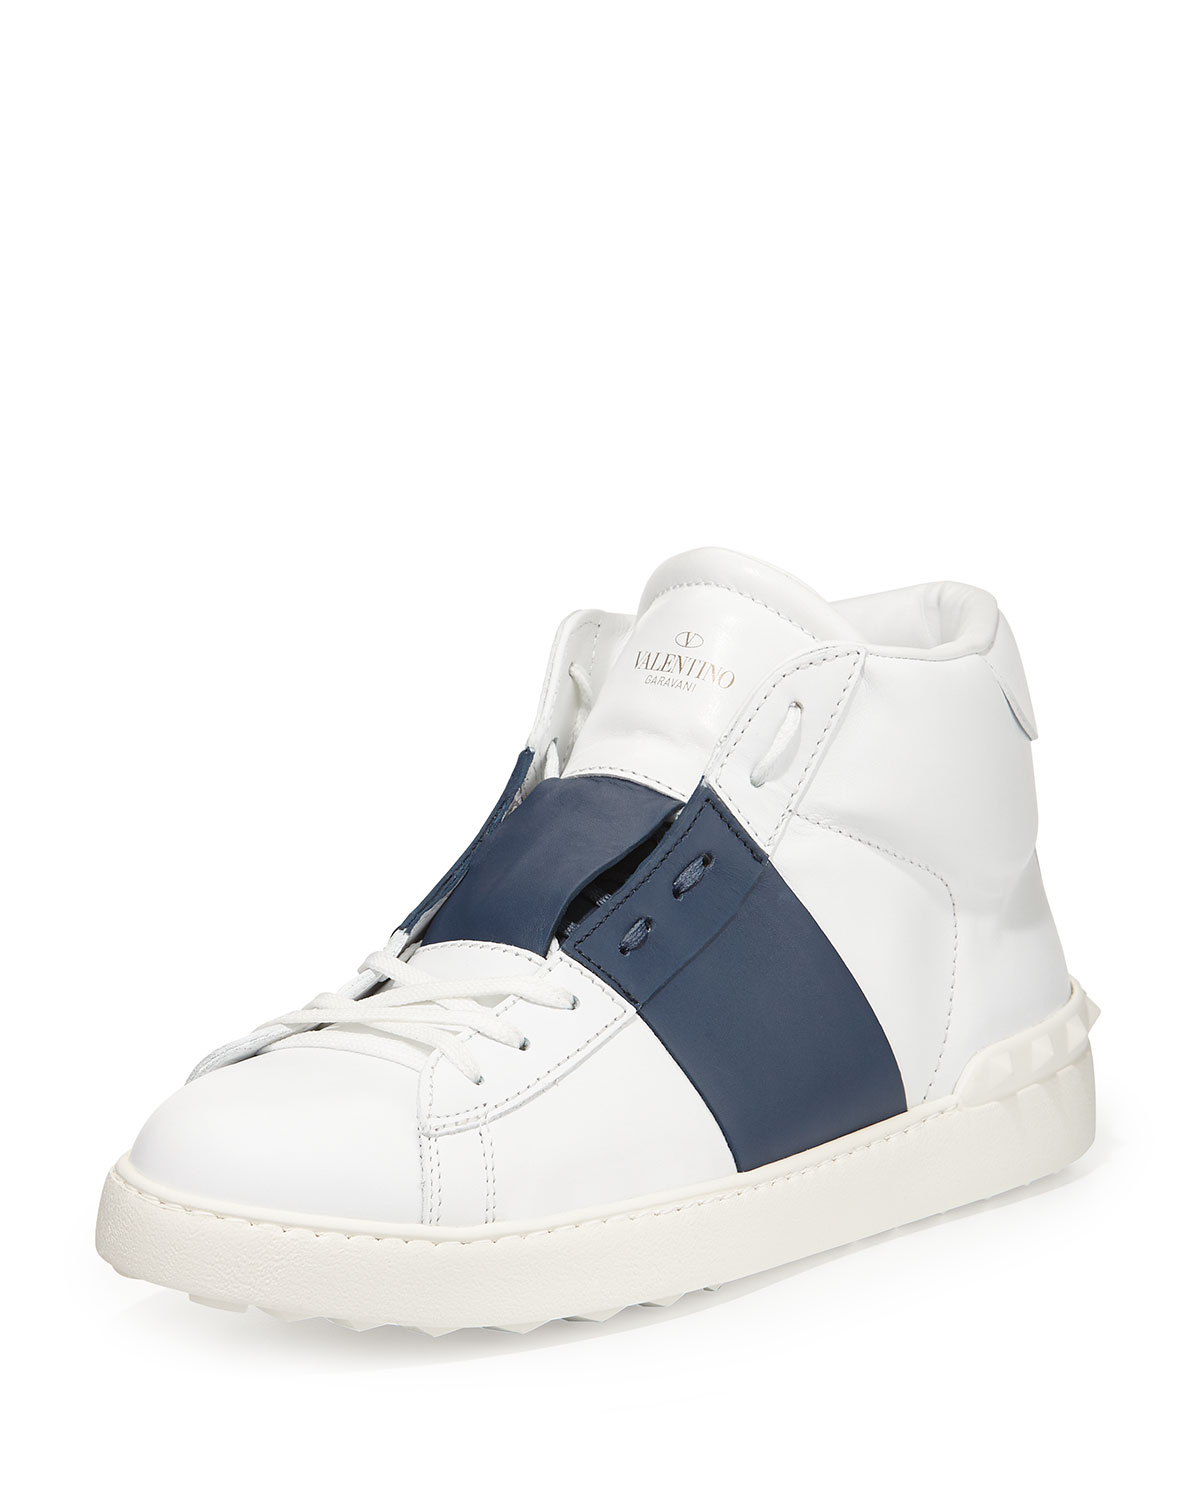 official photos daf42 c2fe6 valentino-white-rockstud-leather-high-top-sneaker -product-1-24292810-2-270841751-normal.jpeg